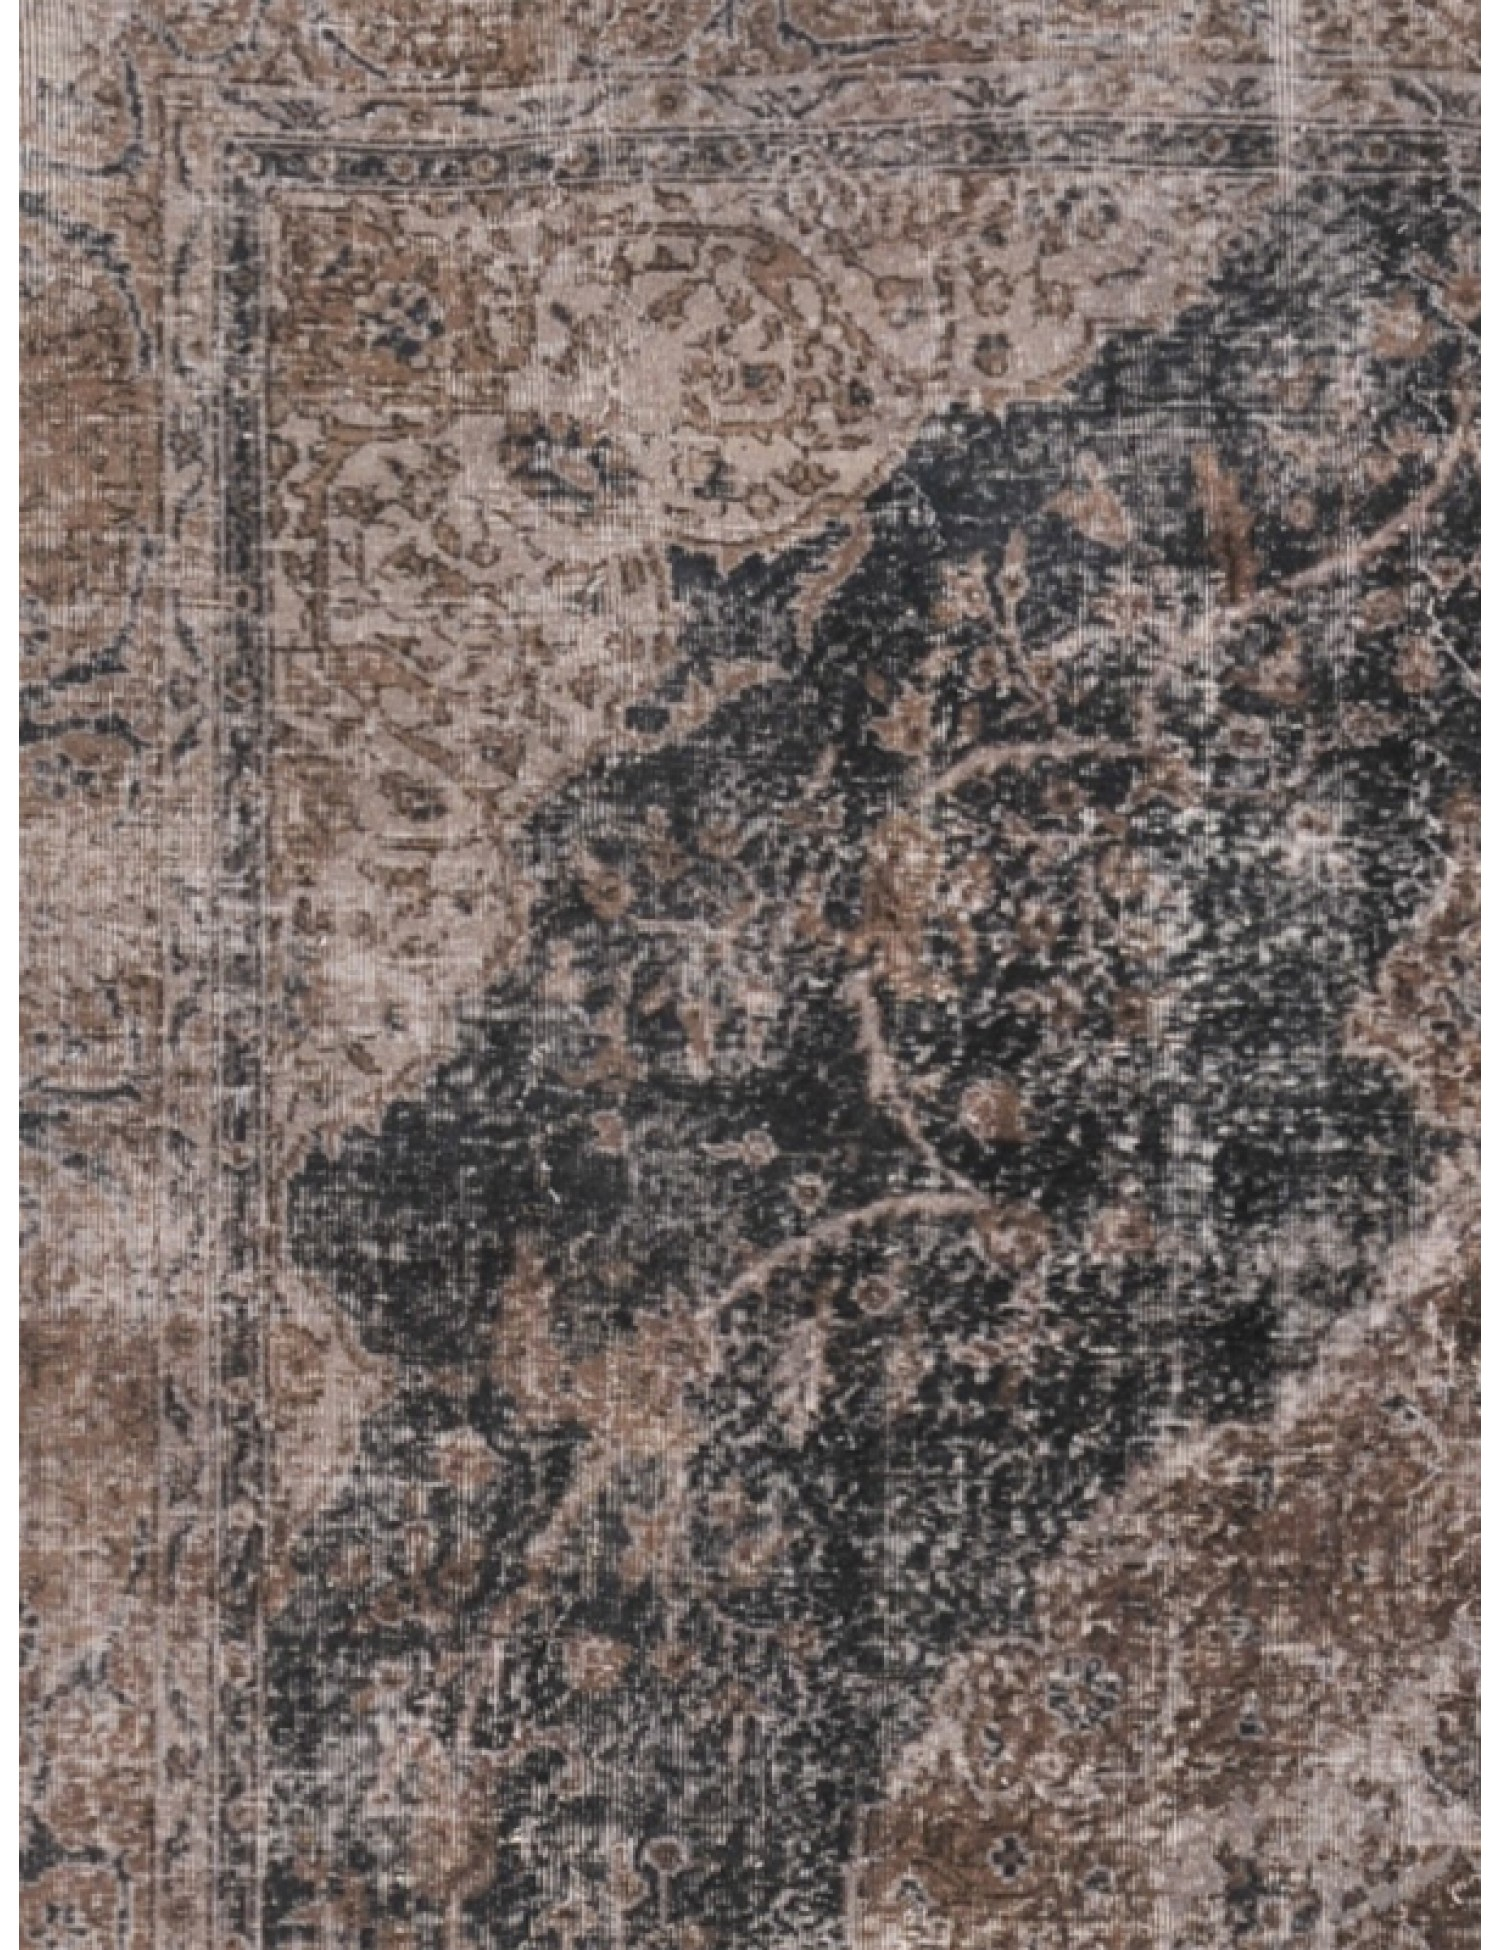 Vintage Carpet  black <br/>343 x 241 cm